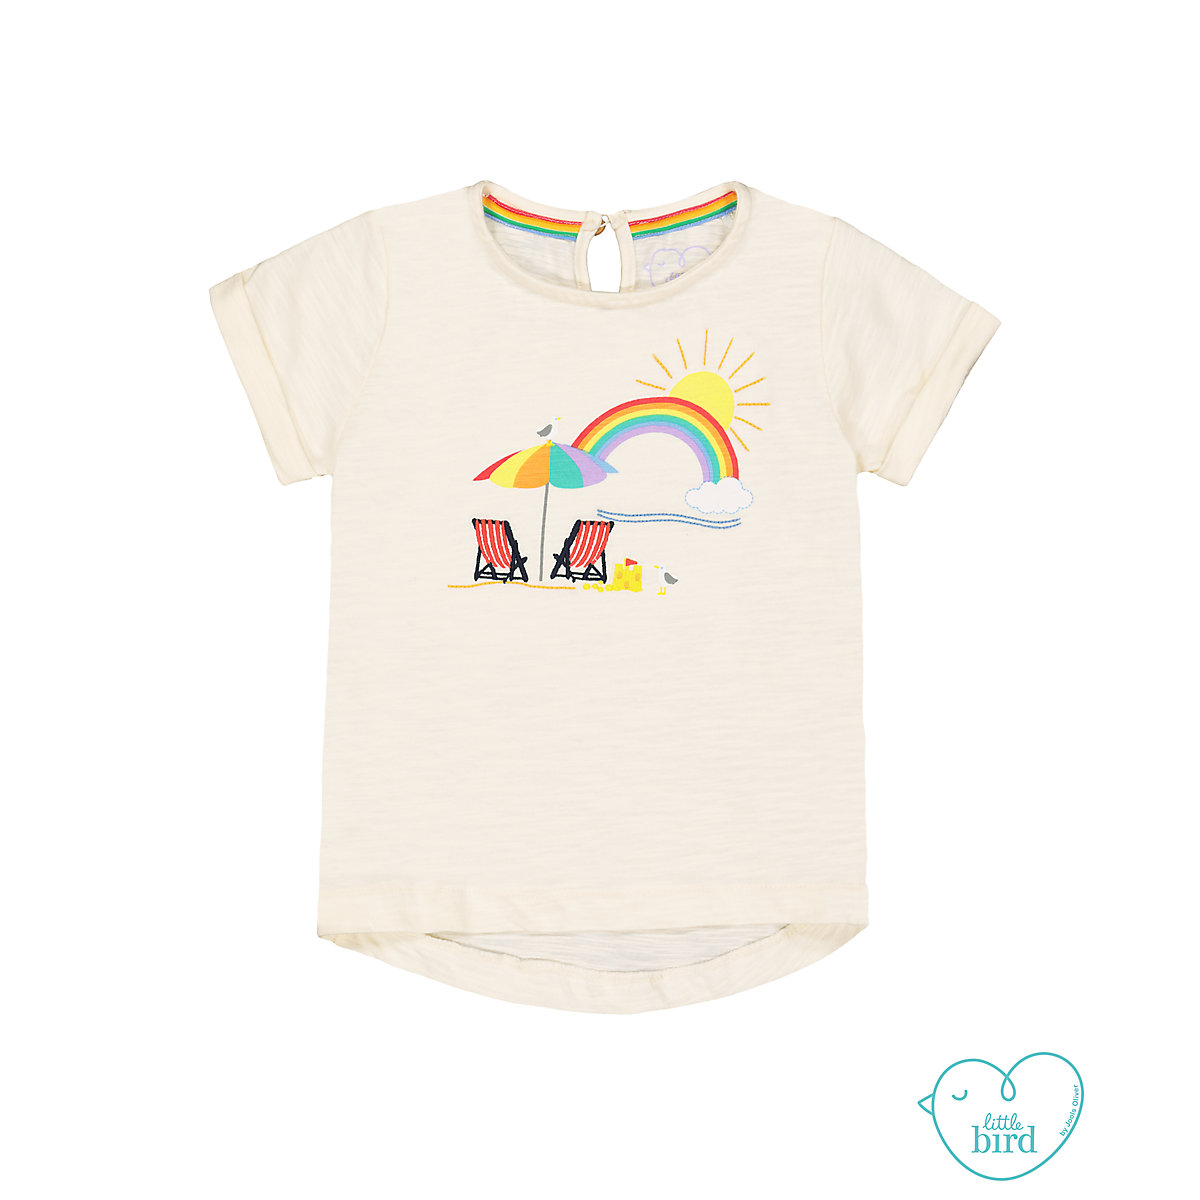 little bird beach scene t-shirt